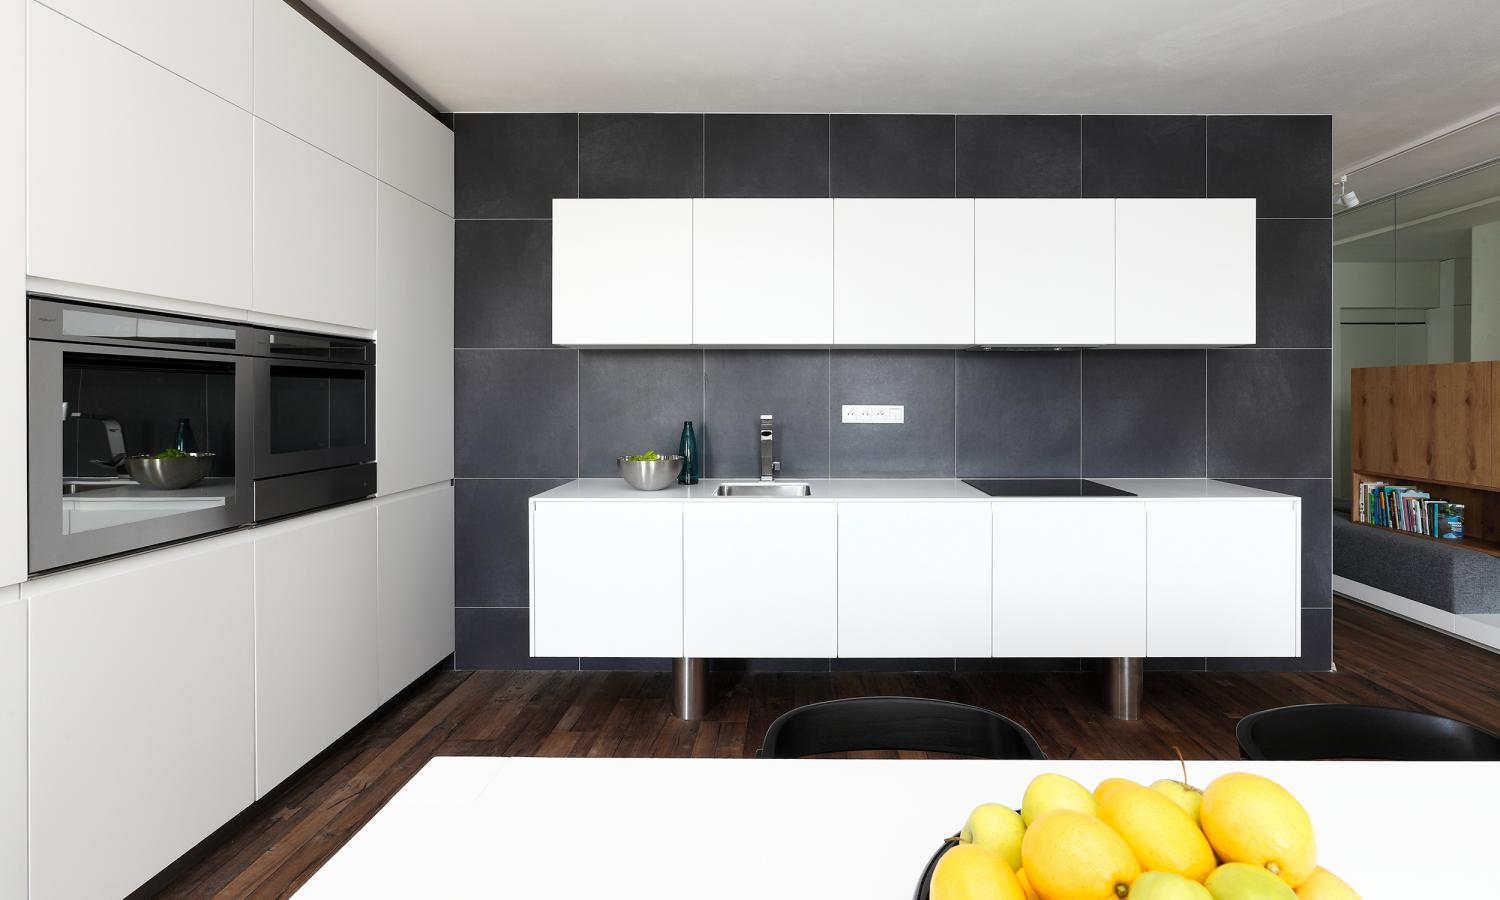 Amazing Kitchen Cabinets Modern Kitchen Cabinets - Indoor plant inspiration to transform your space